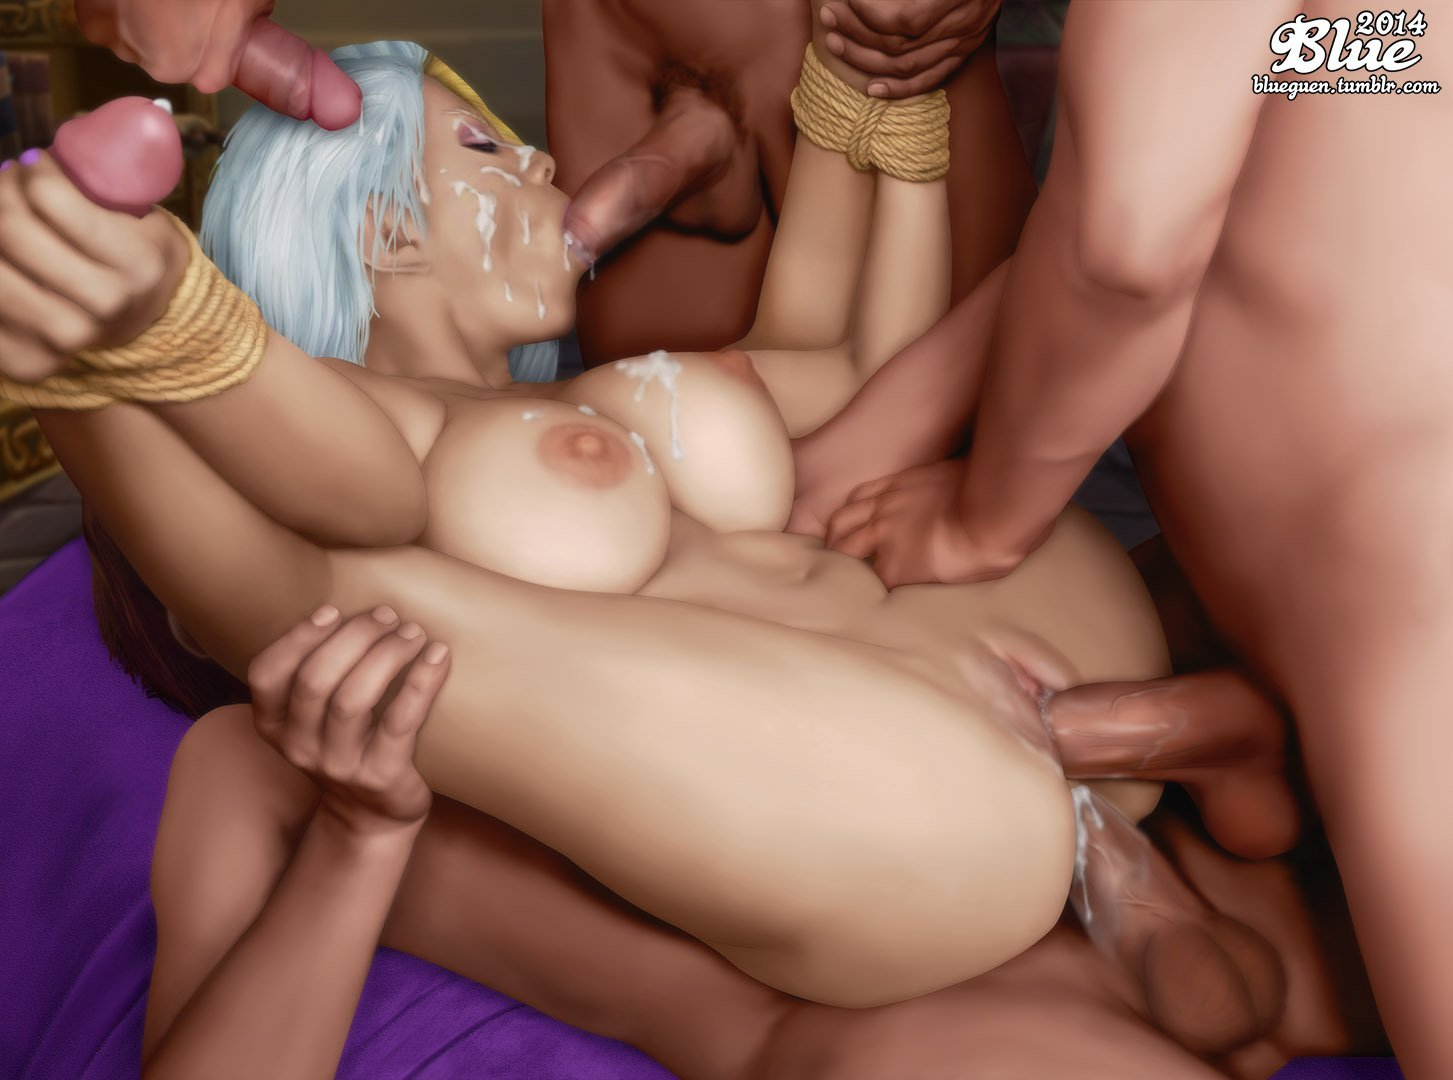 Jaina sex video sex clip